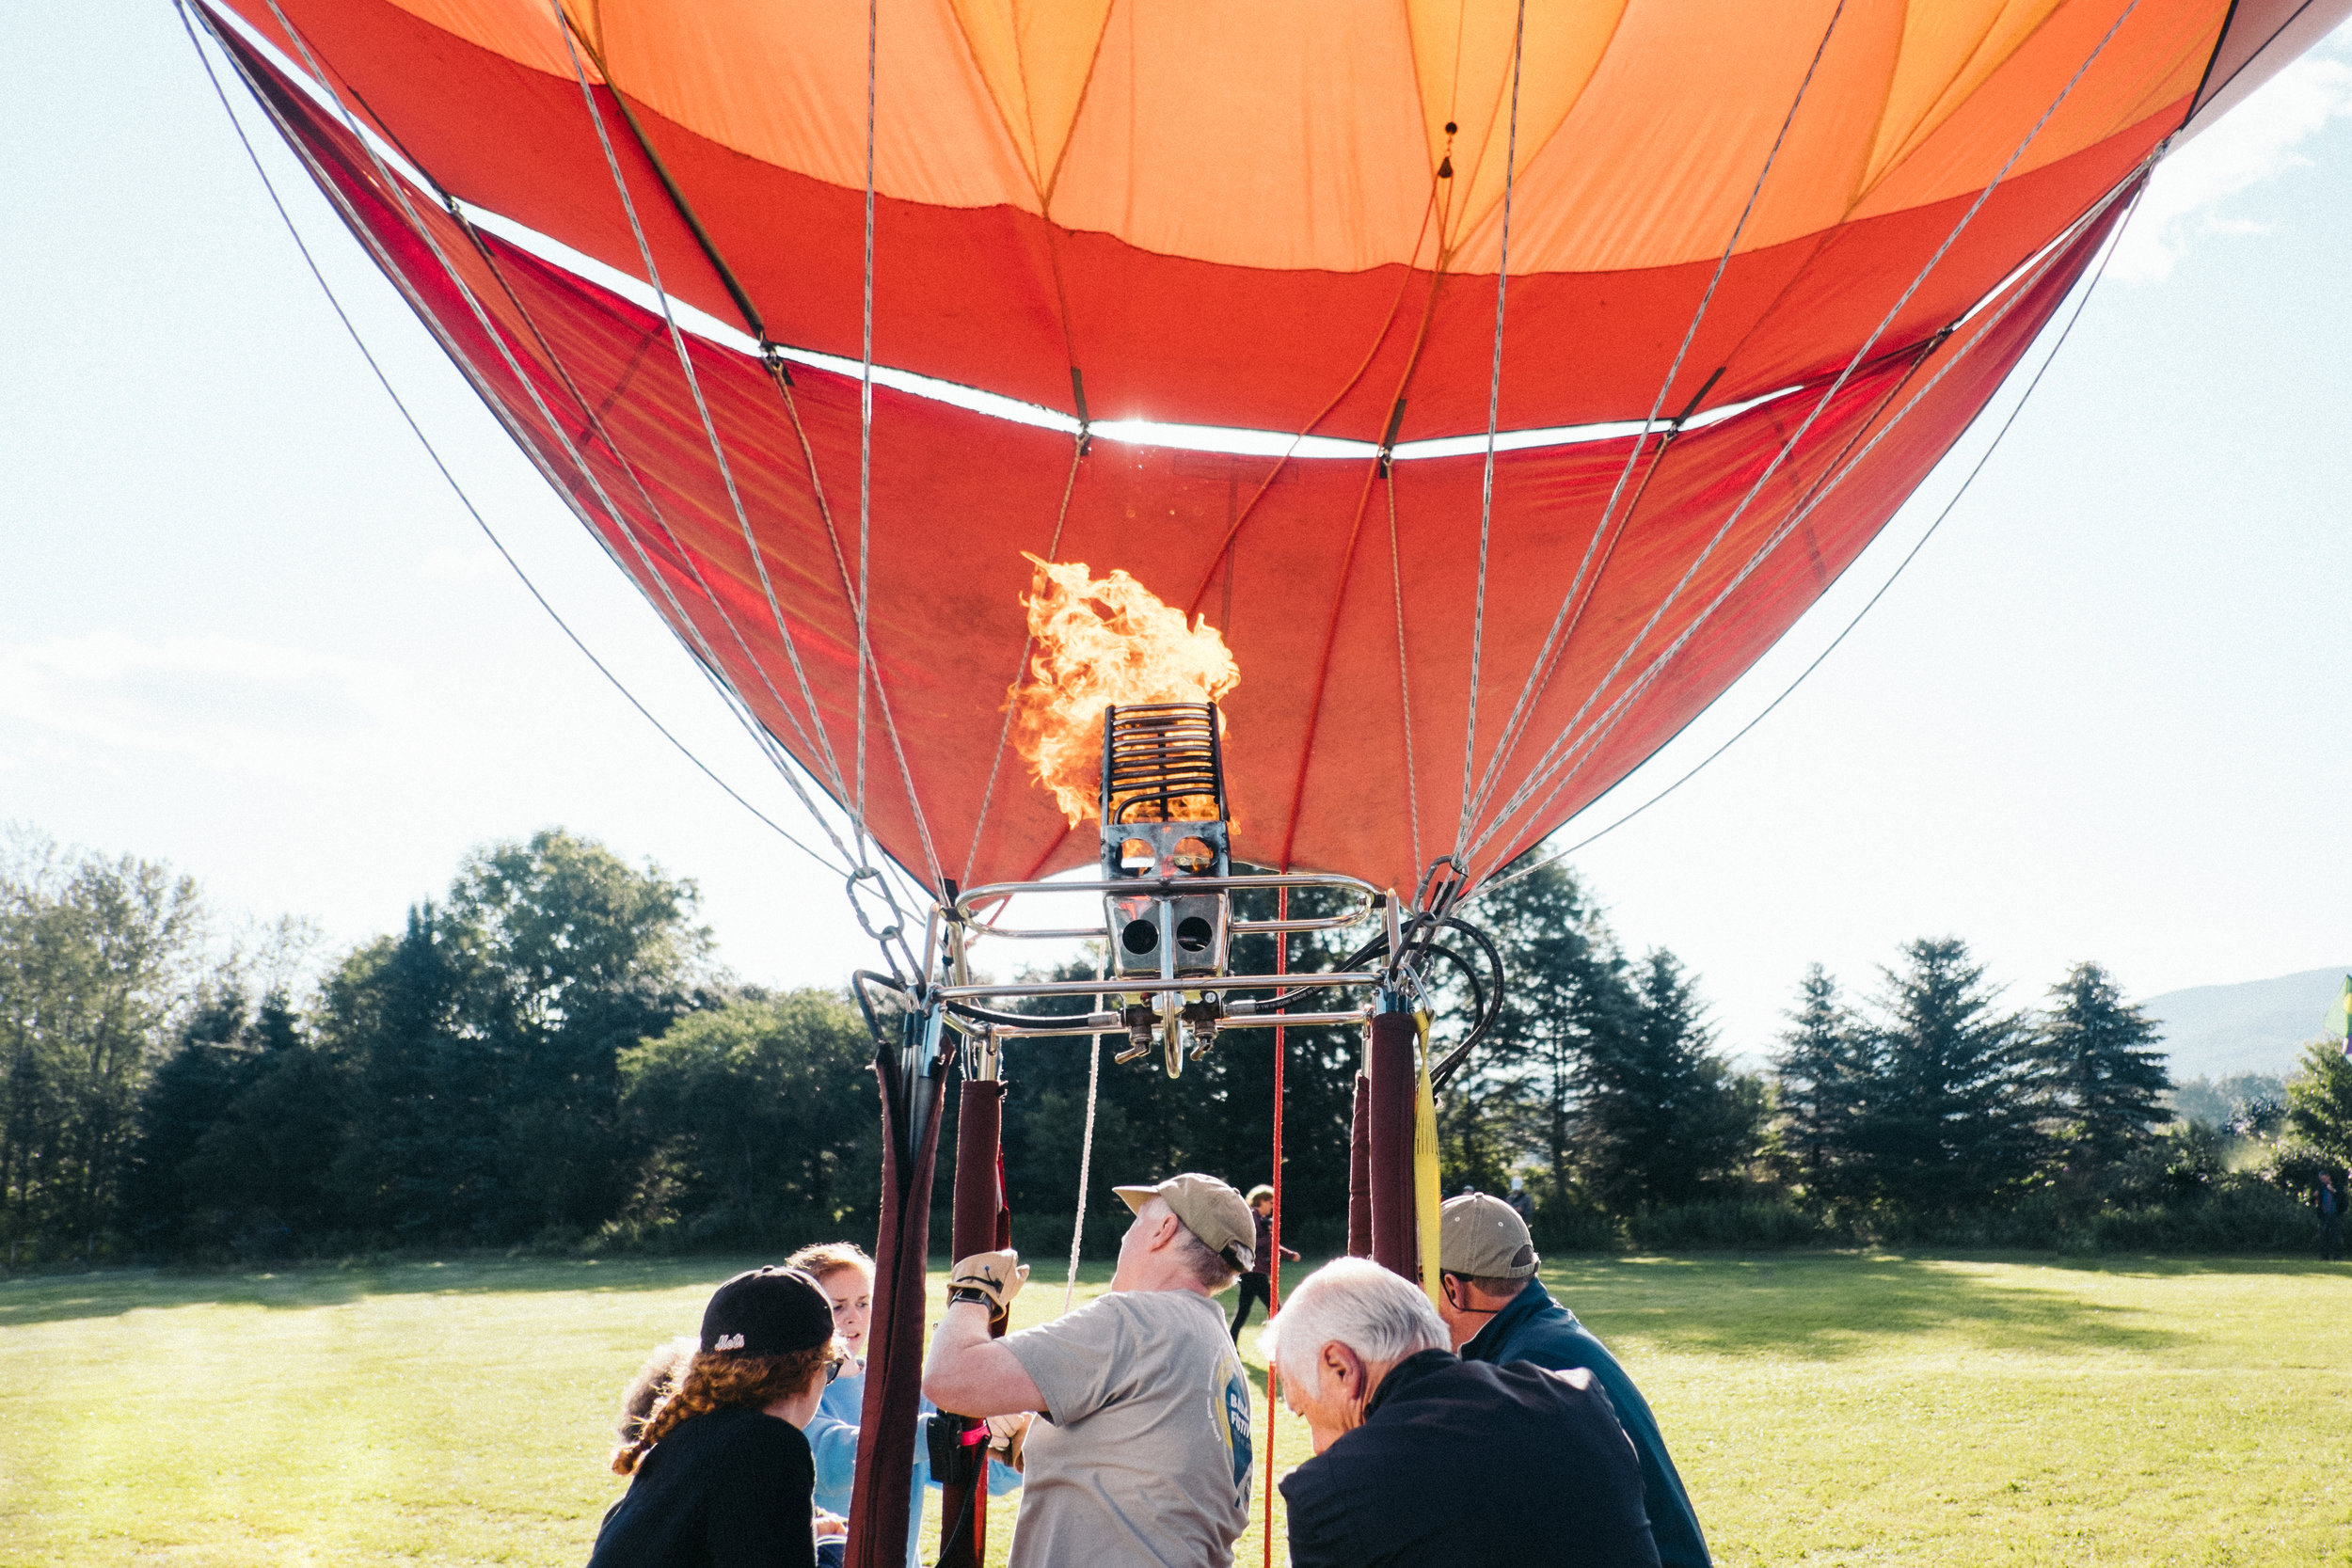 Stowe_Hot_Air_Balloon_Festival14.jpg